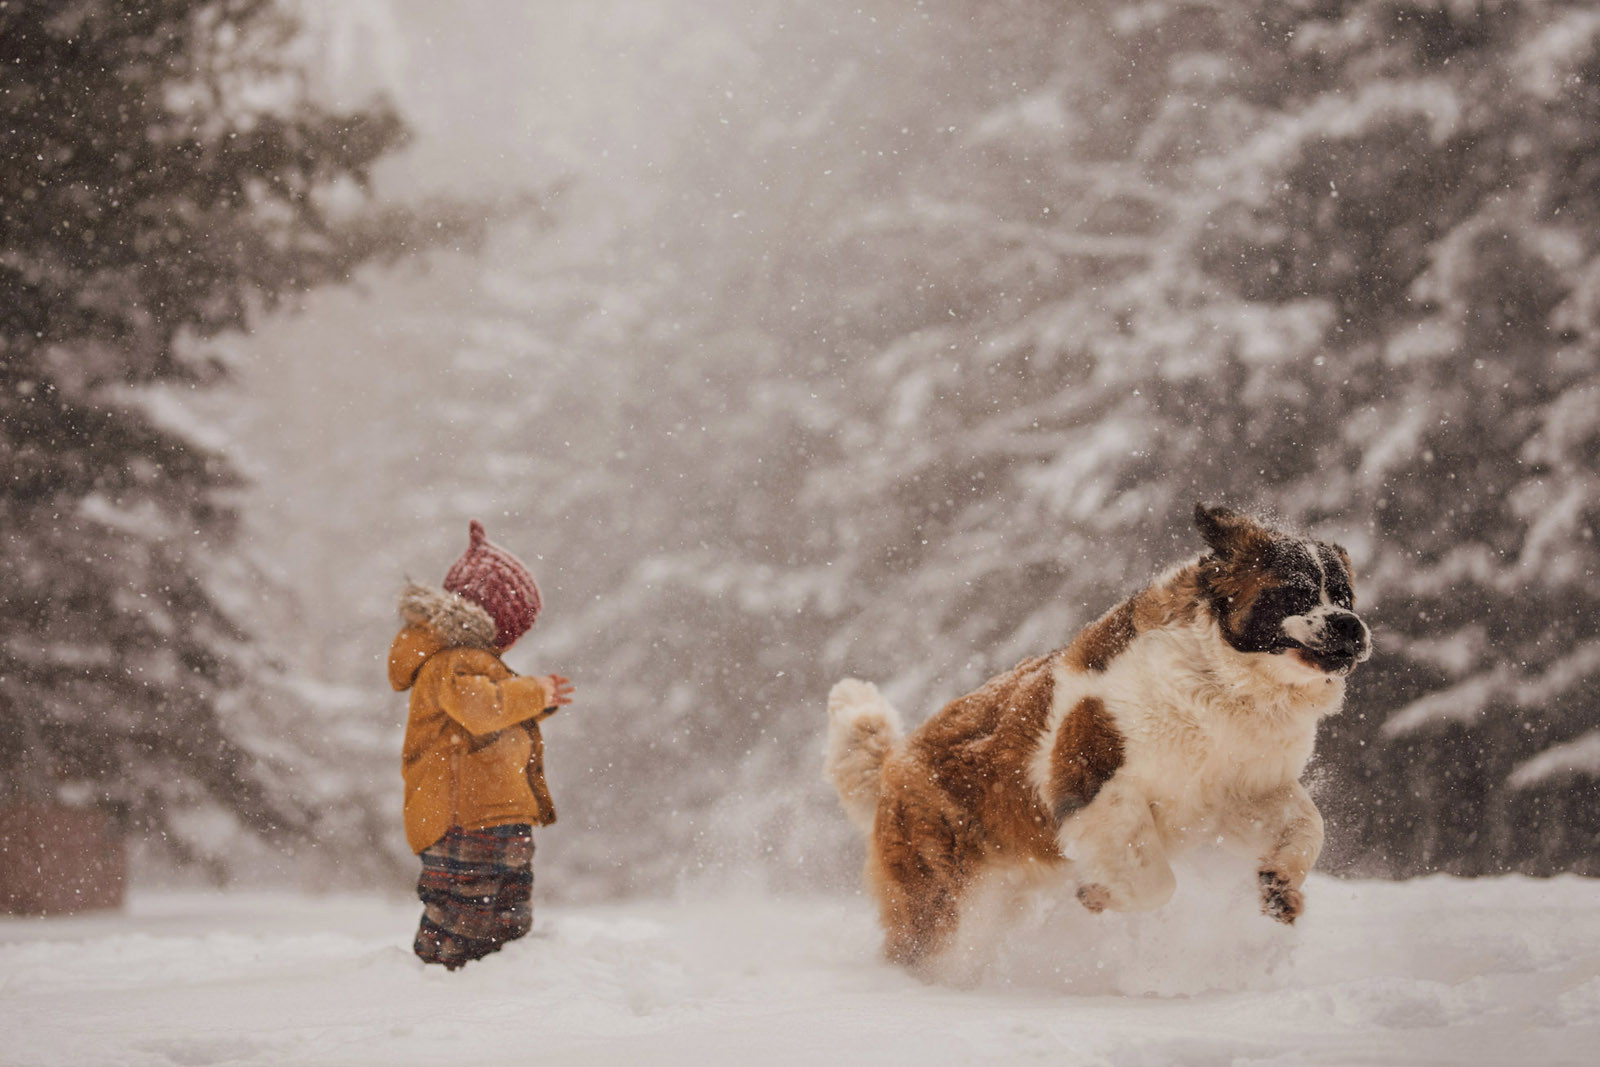 photographing pets boy and large dog st bernard playing in snow by meg loeks